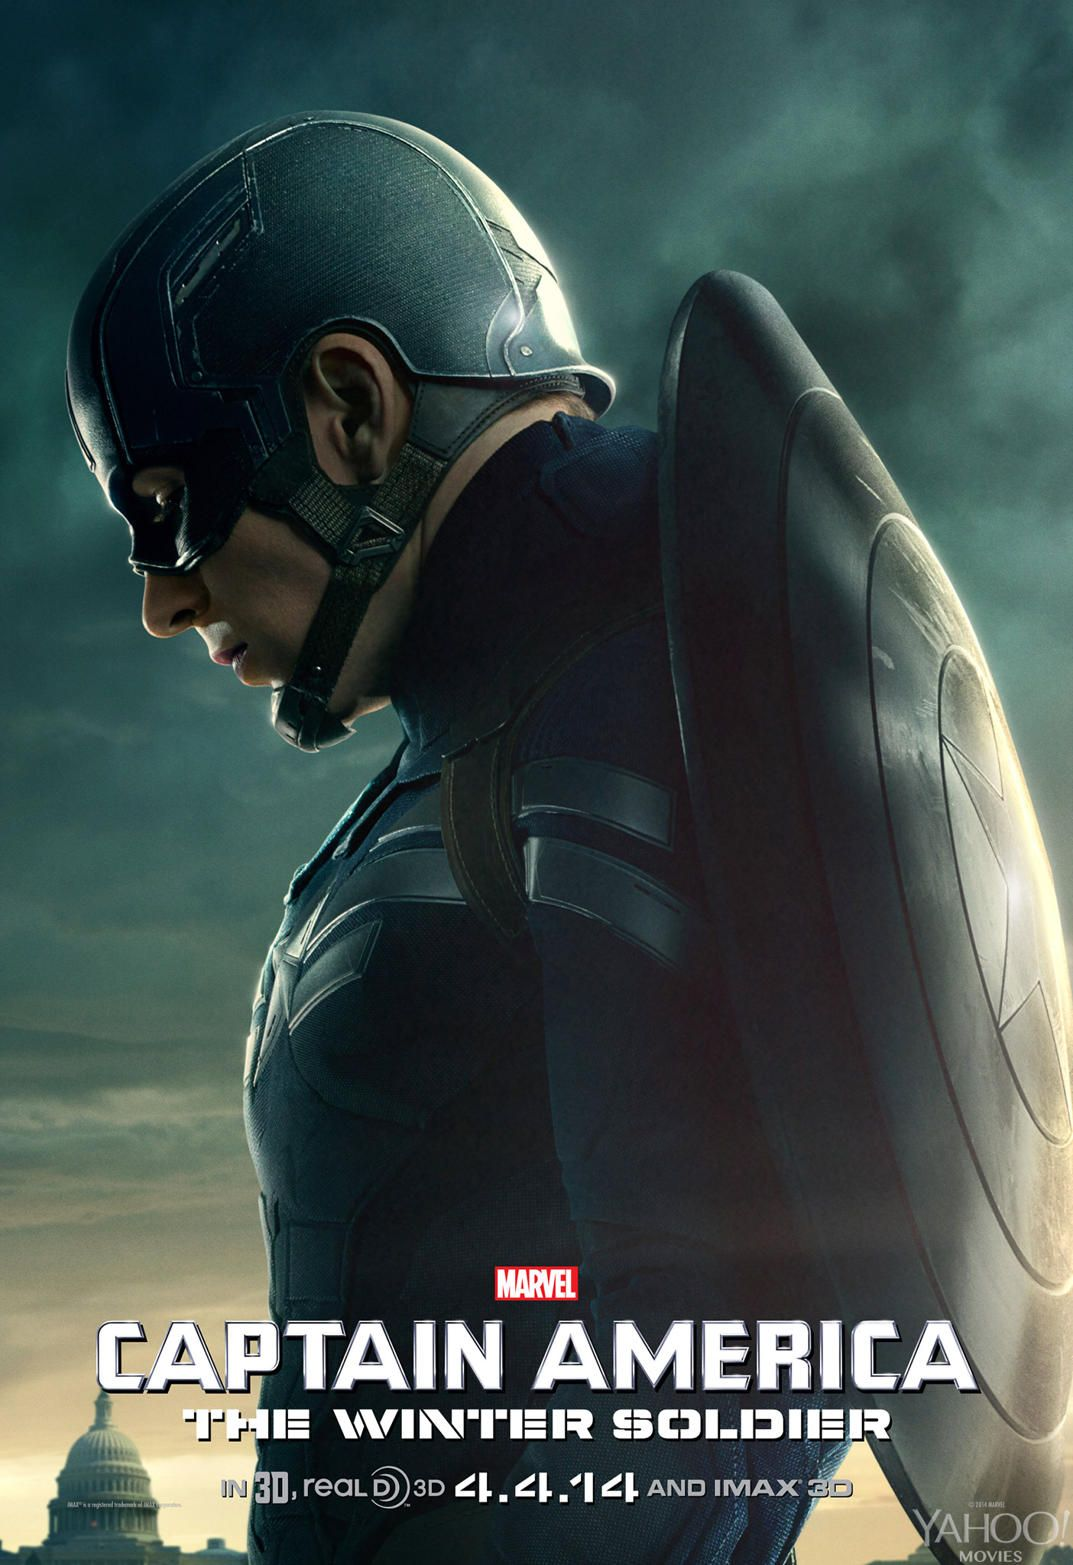 Chris Evans Captain America The Winter Soldier movie poster